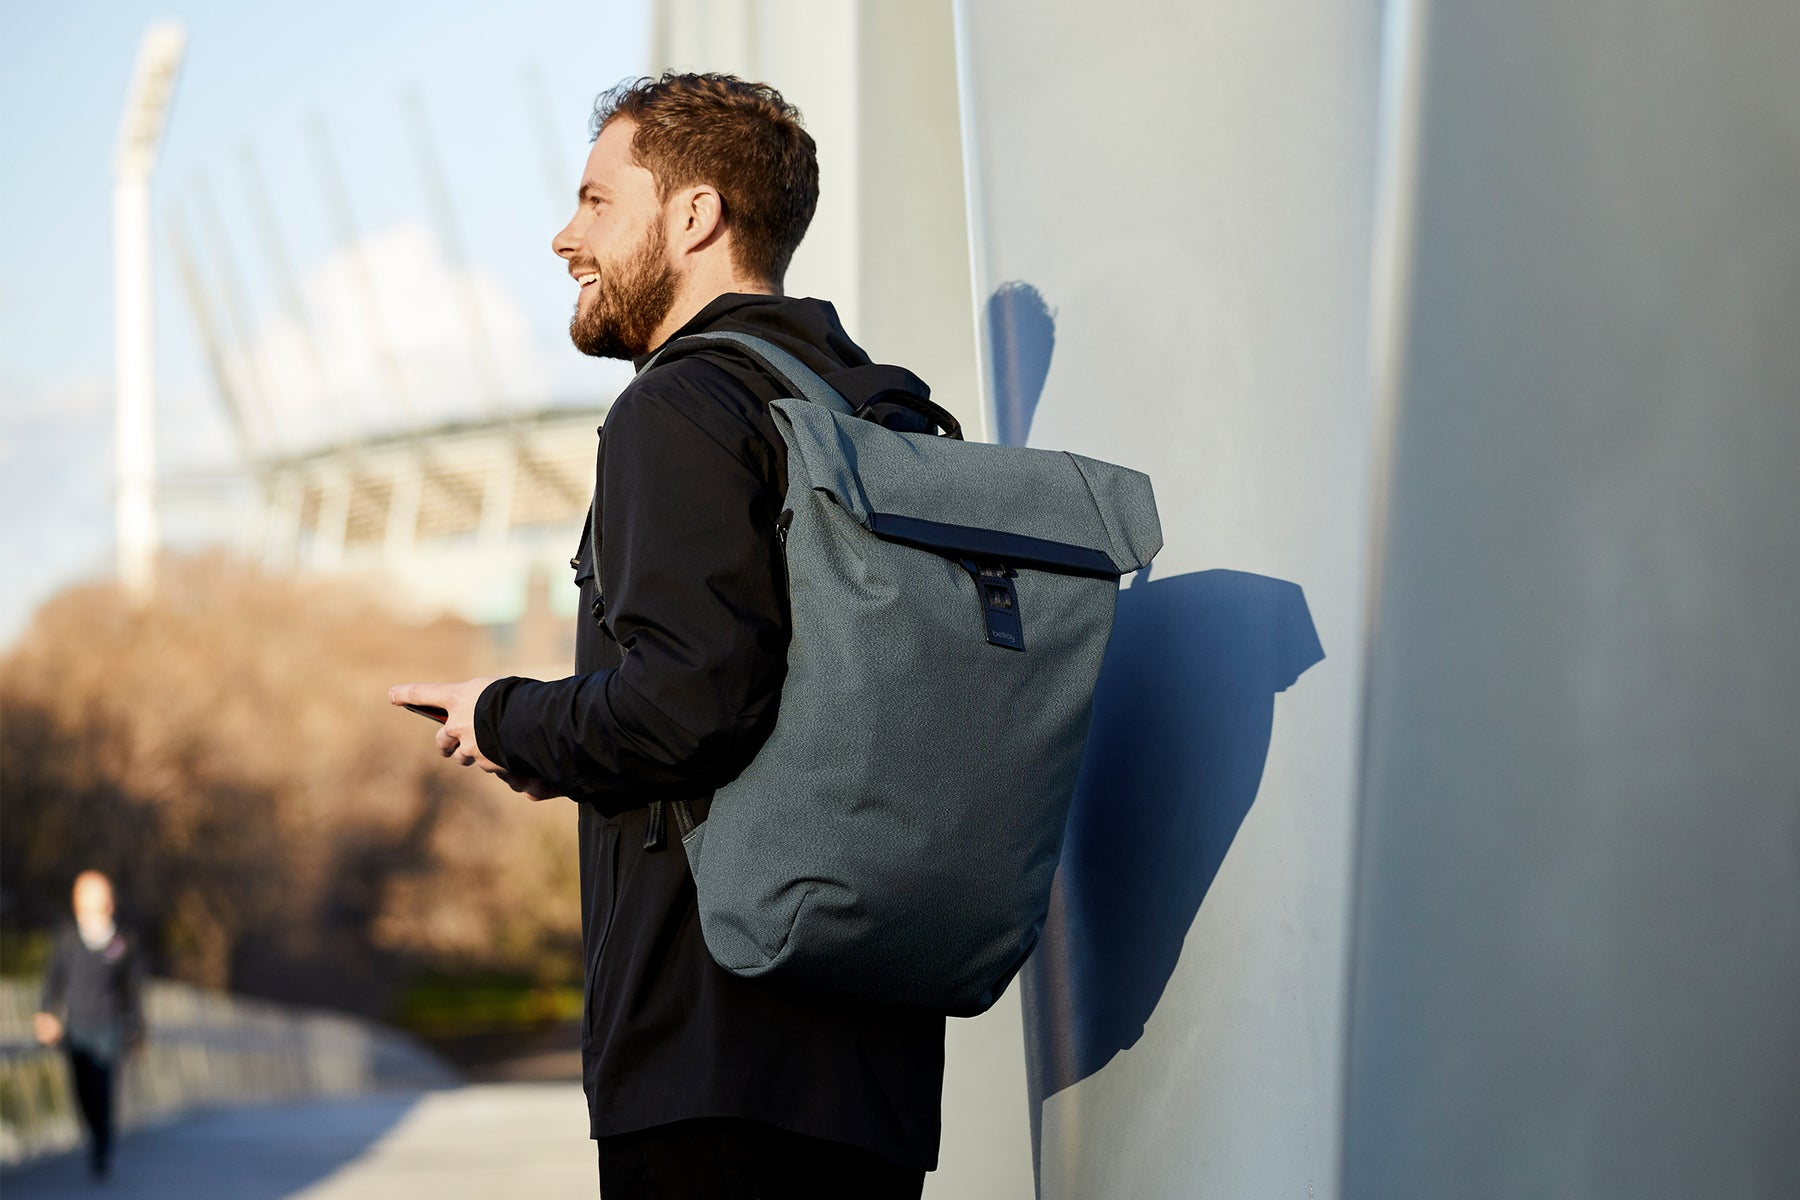 The Bellroy Shift Backpack, A Truly Great Bag